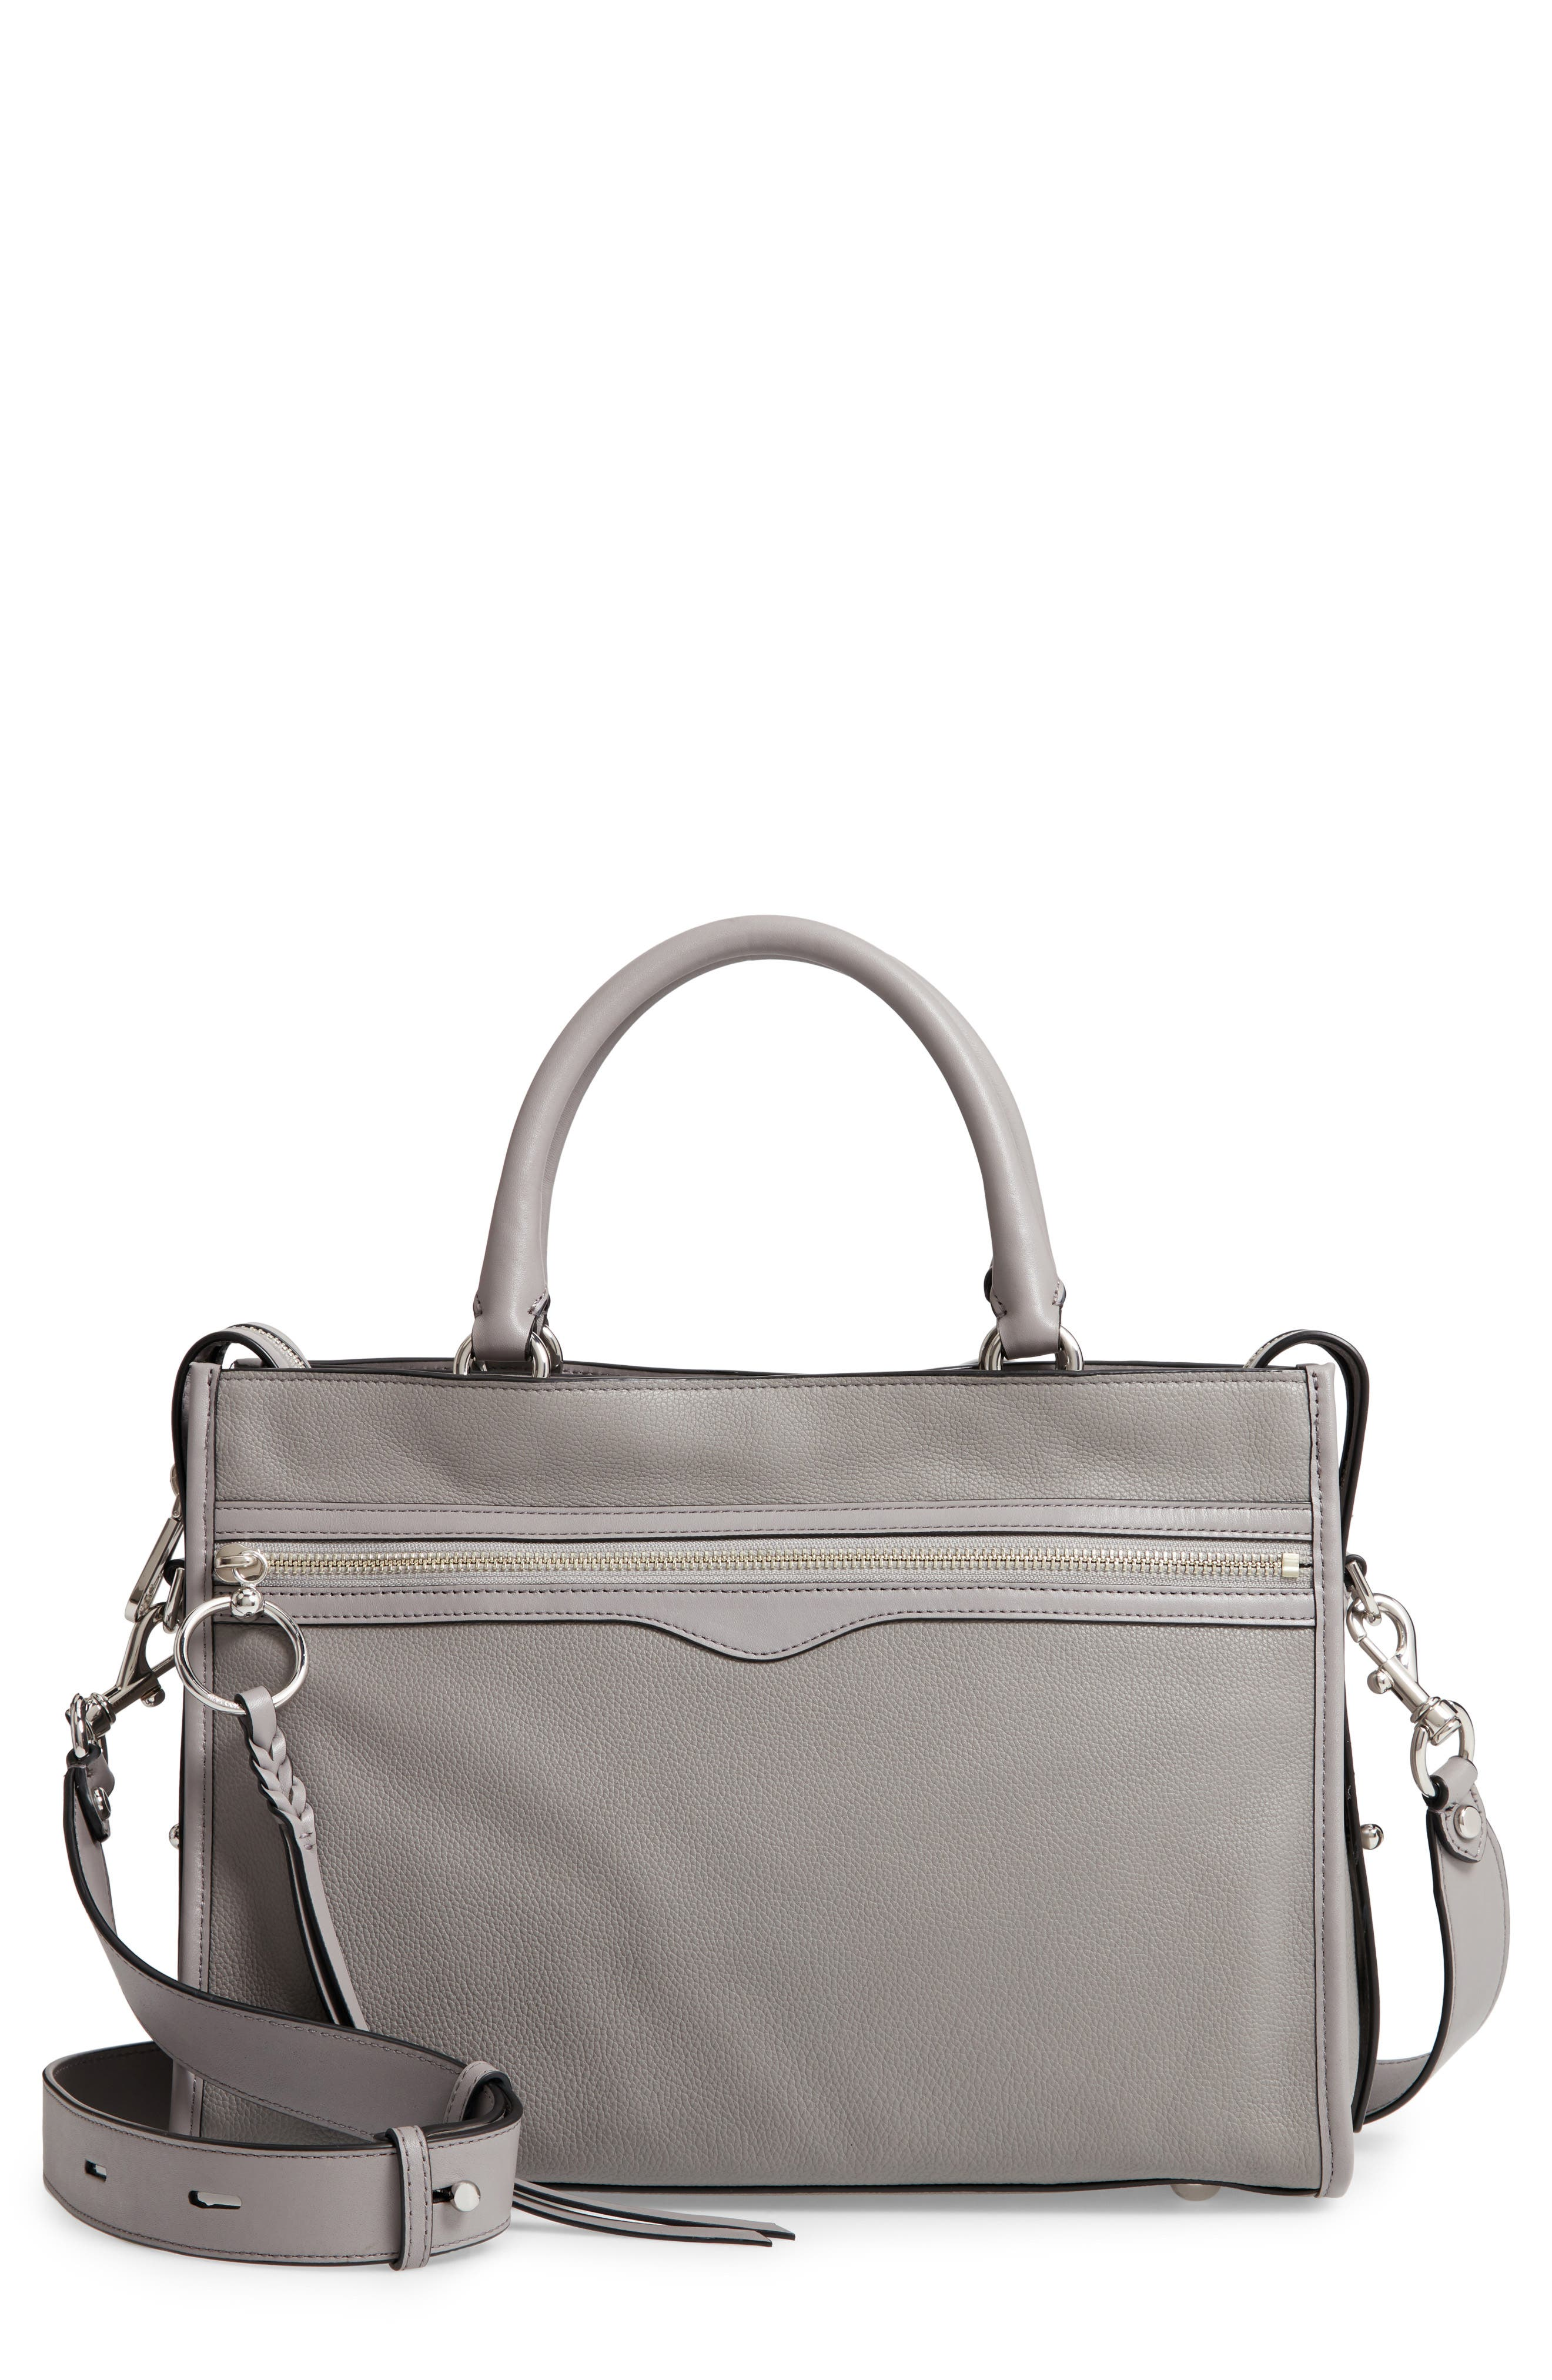 REBECCA MINKOFF Bedford Zip Leather Satchel, Main, color, GREY